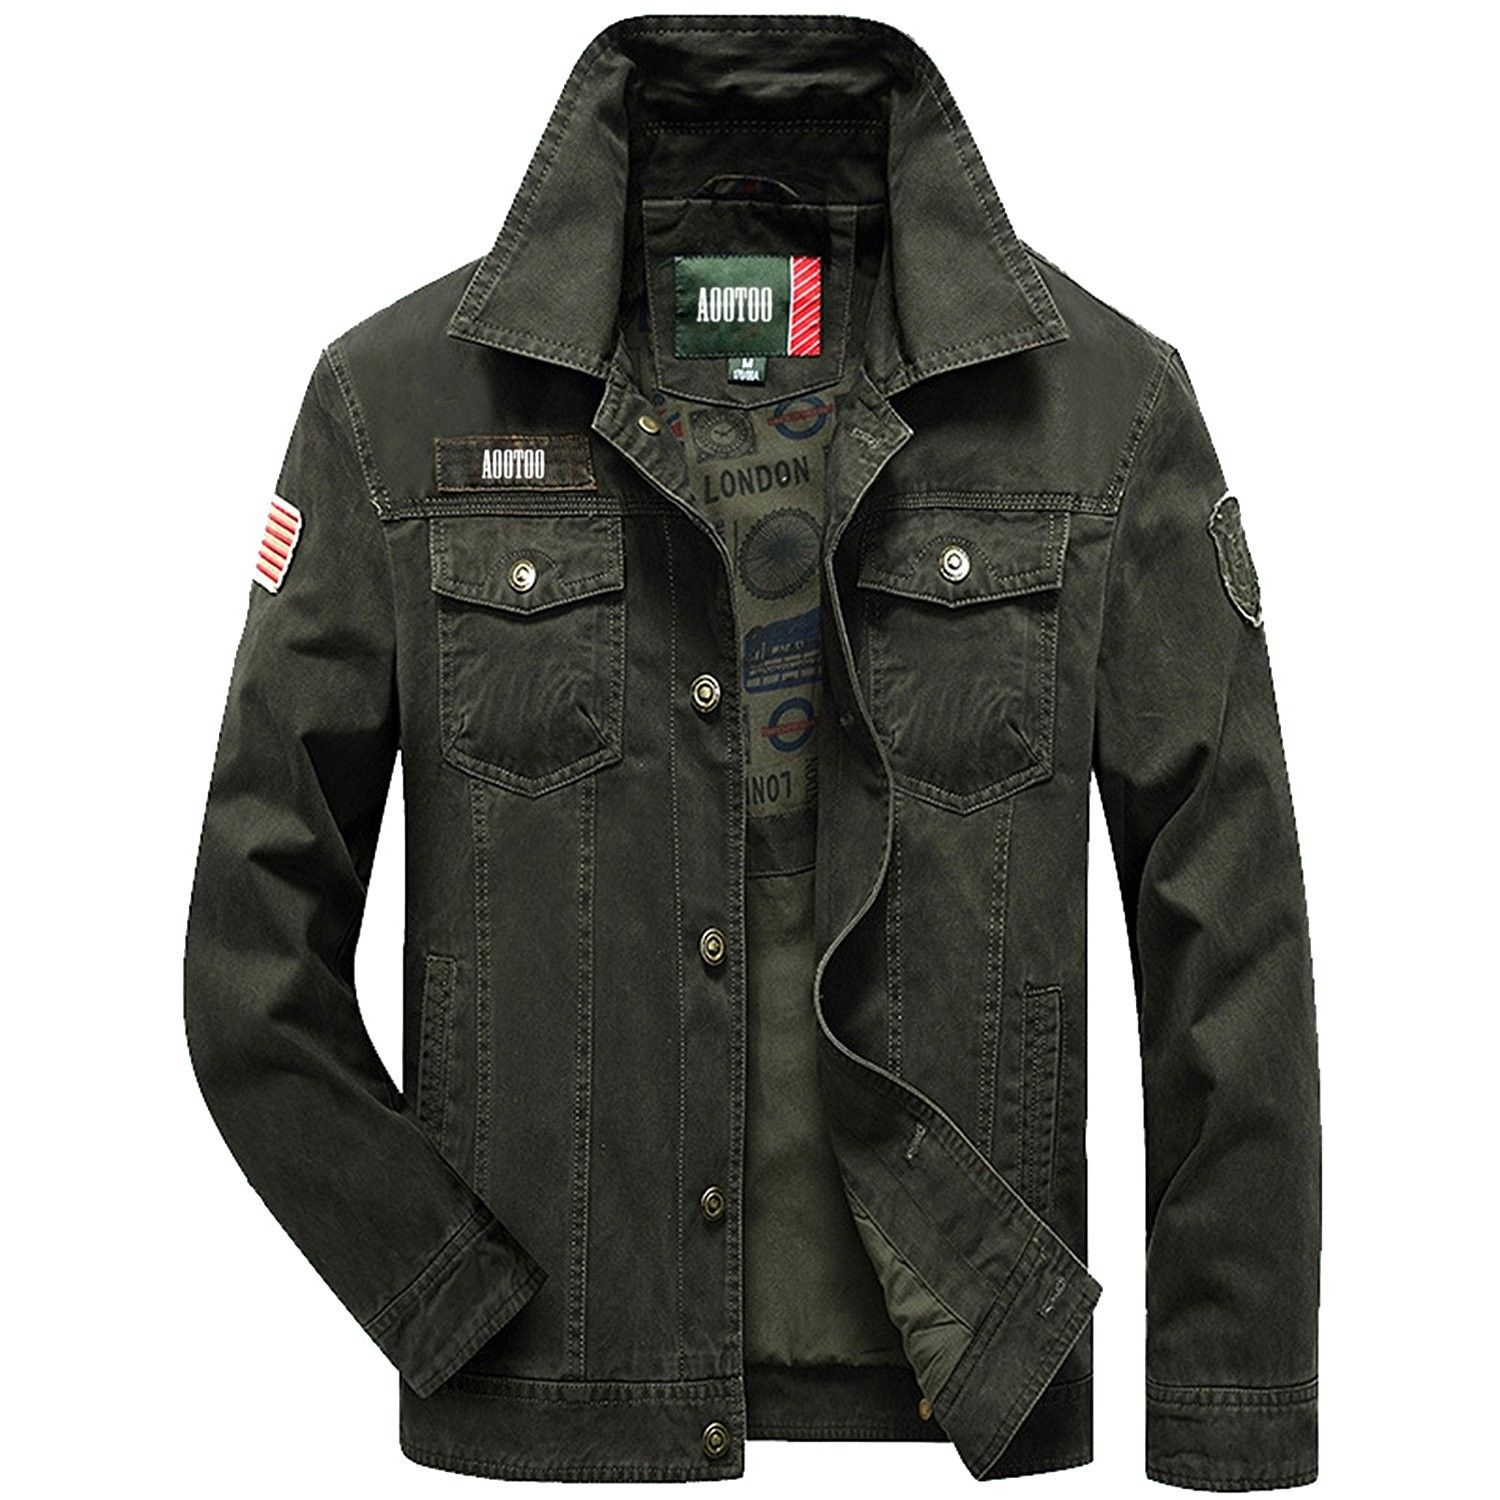 3195788f985 Men's Clothing, Jackets & Coats, Lightweight Jackets, Mens Casual Cotton  Bottom Down Lightweight Jackets - Army Green - CC12O6BTQPZ #style #fashion # Jackets ...